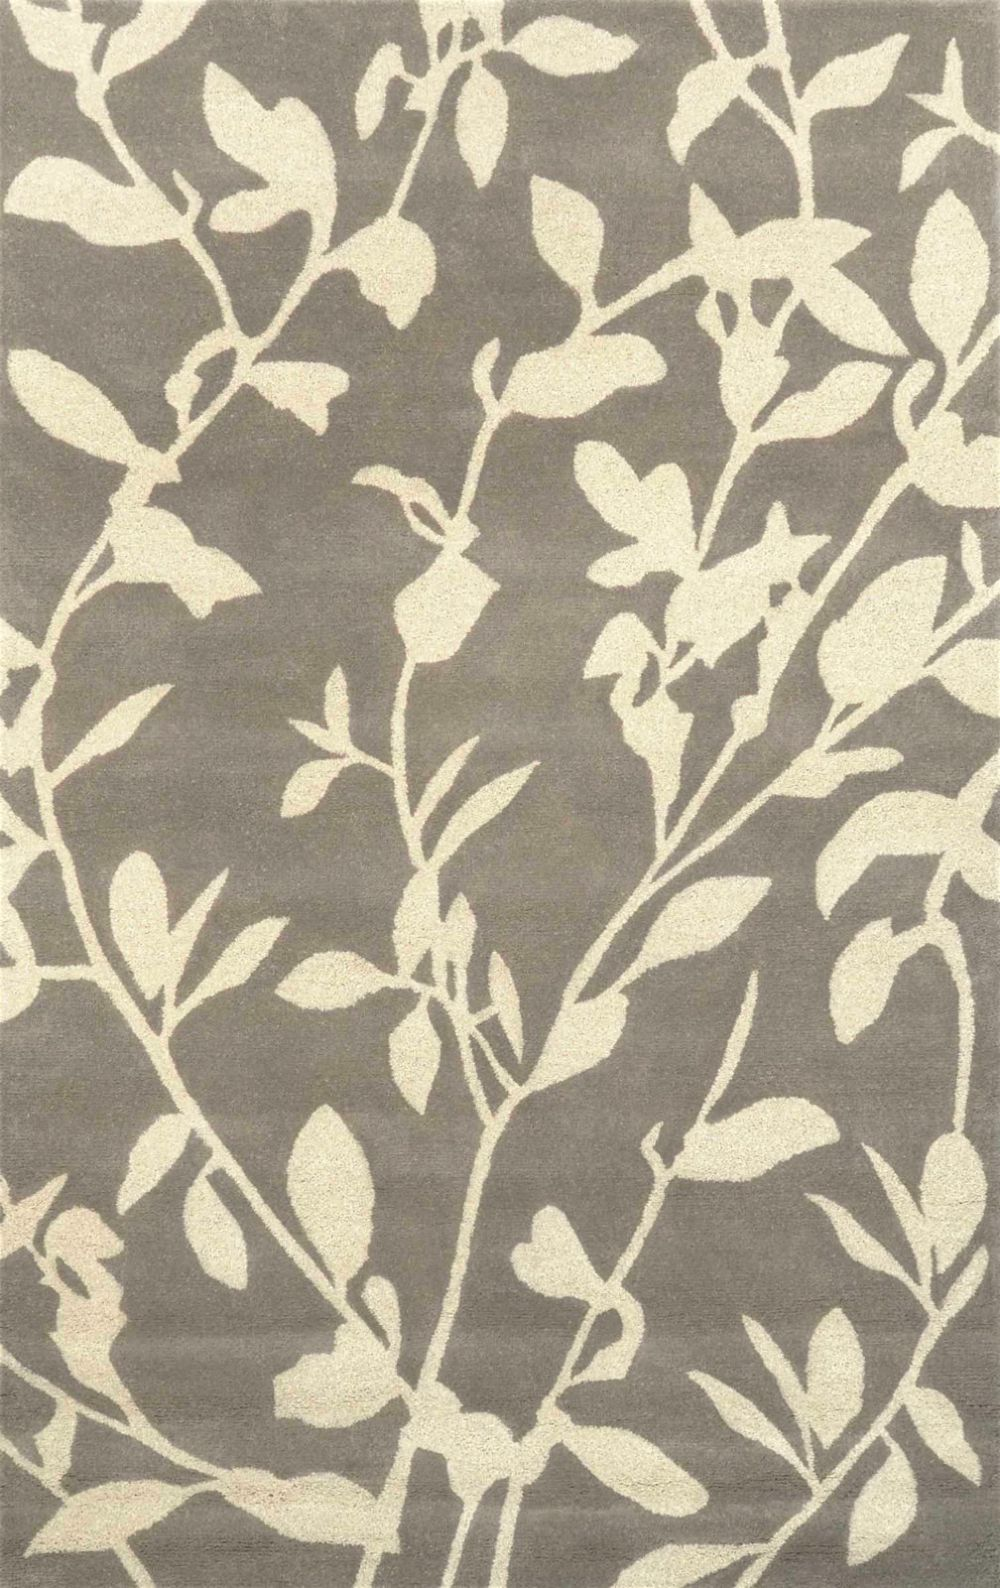 nuloom wilbert country & floral area rug collection